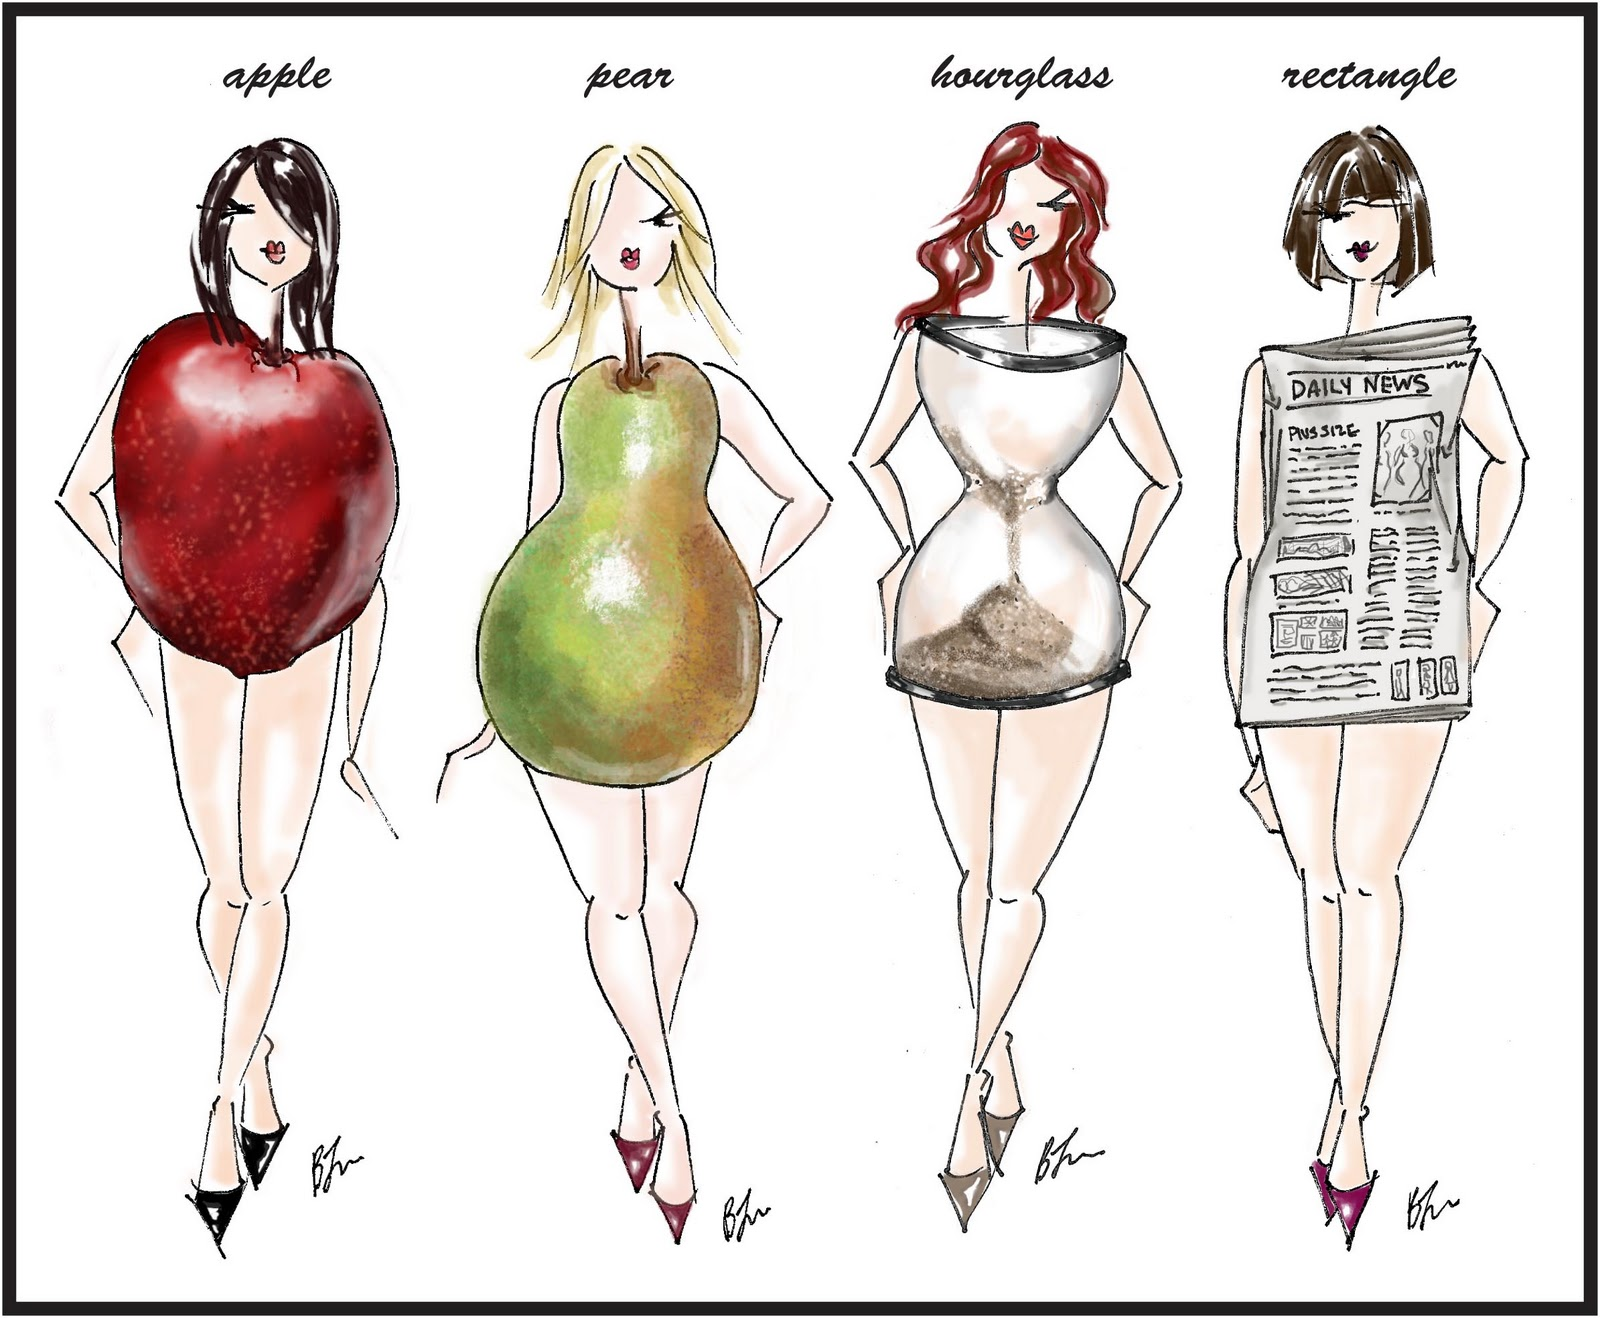 Dress up meaning - Pear Ing It Up Yoga Outfits For Pear Shaped Women Walking On Sunshine Surya Yoga